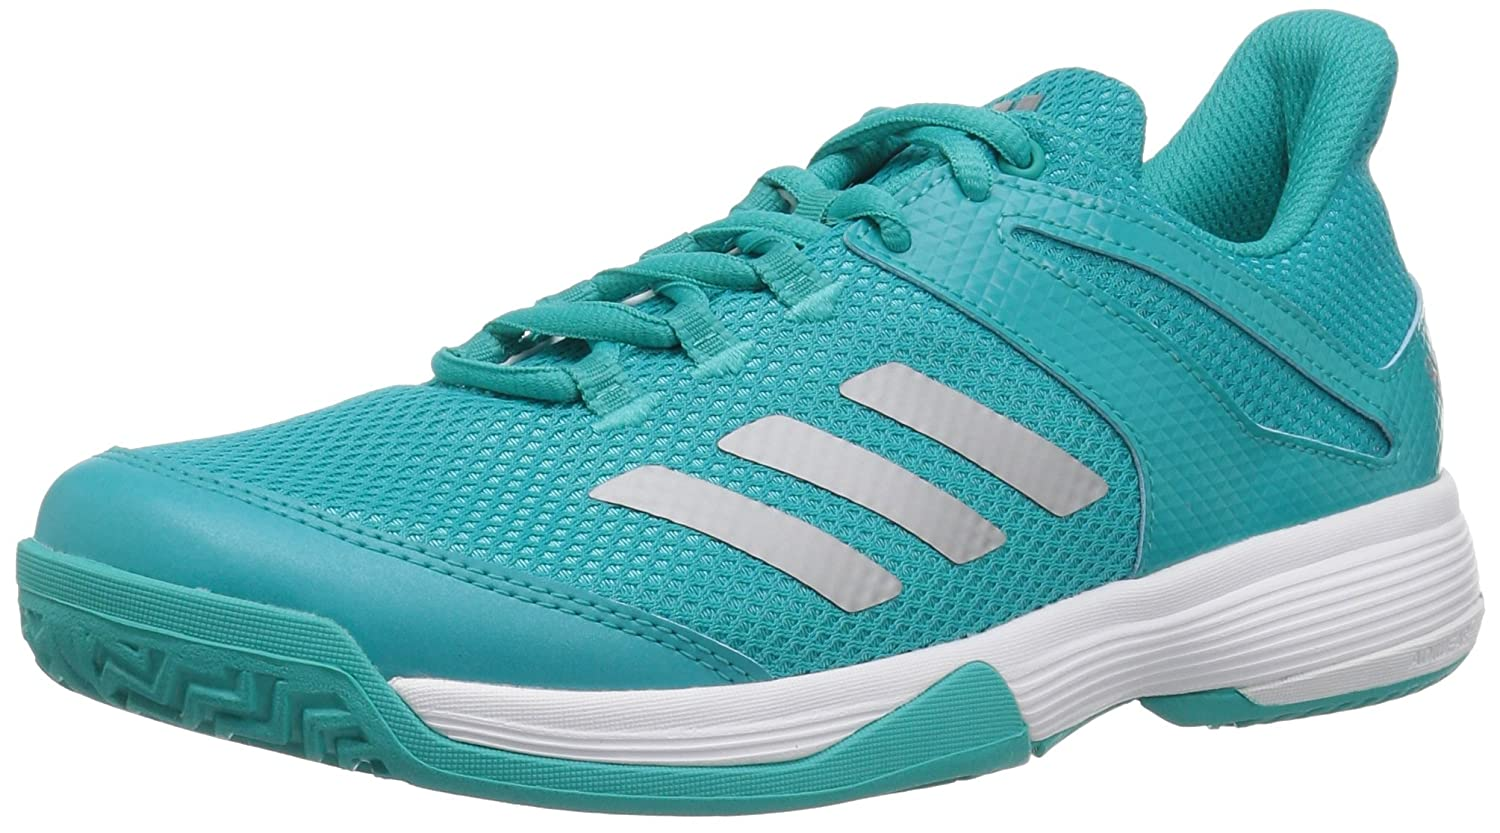 adidas ユニセックスキッズ Adizero Club K B077Y1T1BM 13.5K M US Little Kid|Hi-res Aqua/Matte Silver/White Hires Aqua/Matte Silver/White 13.5K M US Little Kid